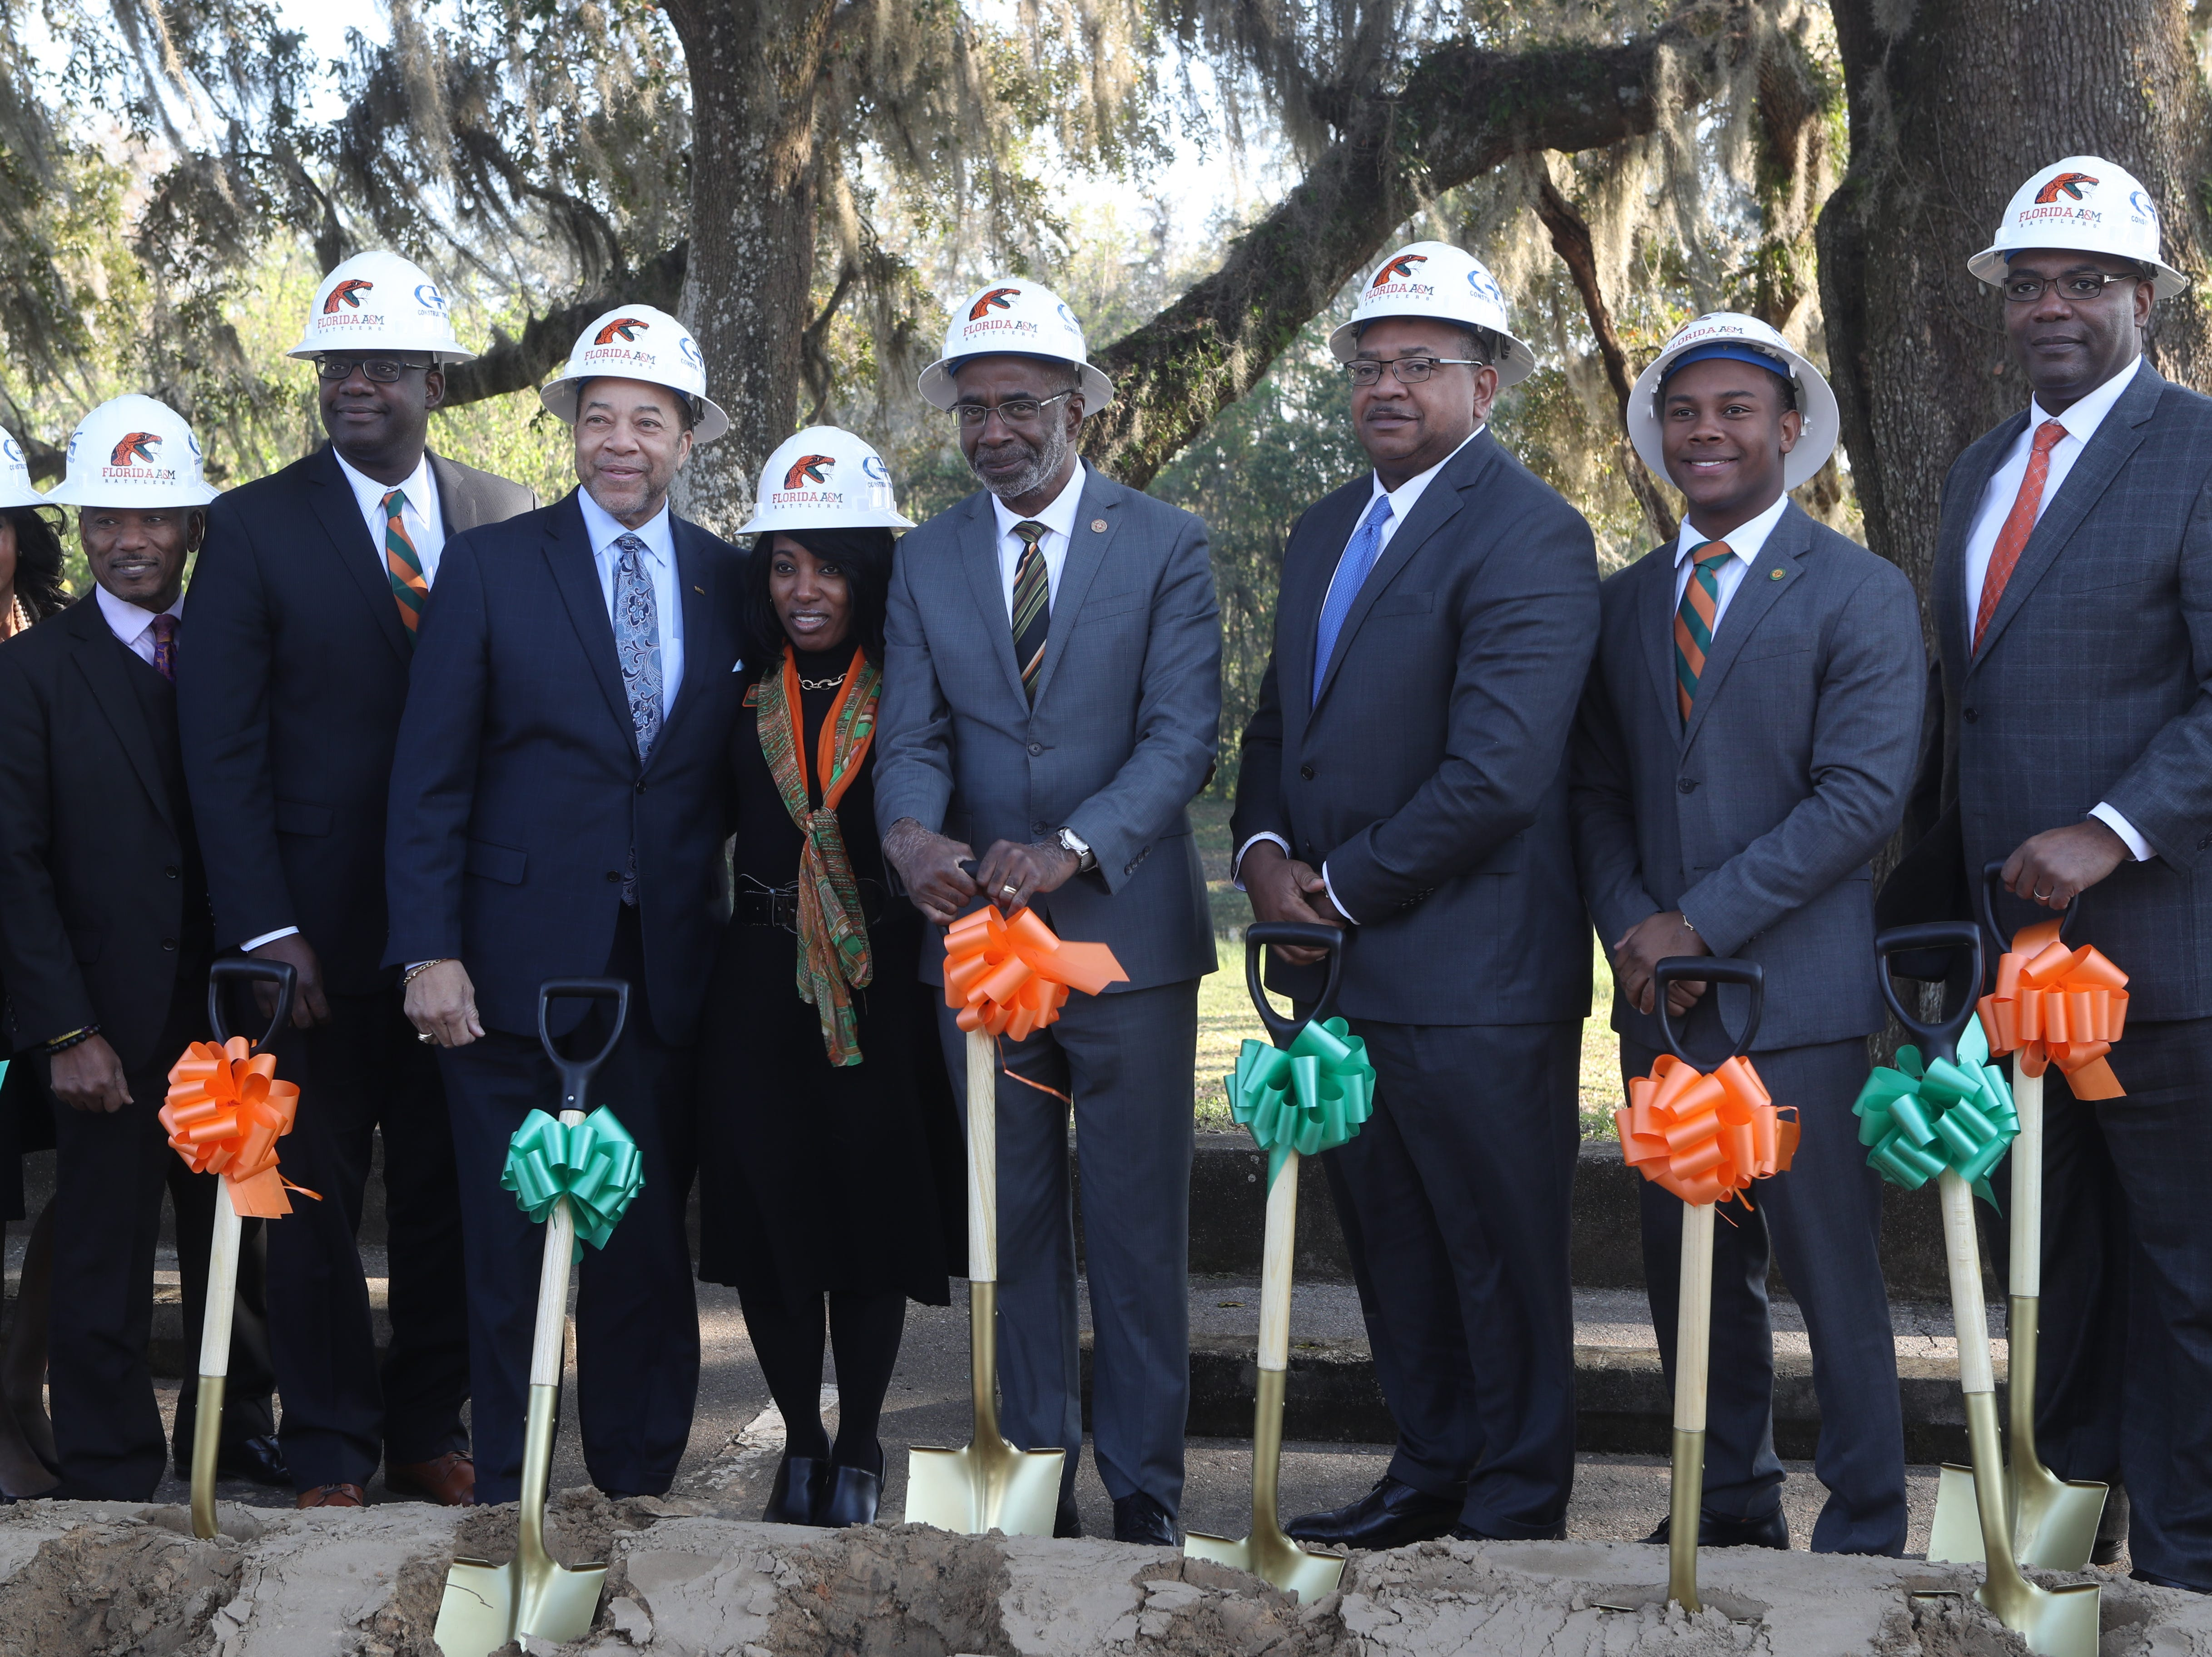 Ceremonial groundbreaking participants pose with their shovels during a groundbreaking celebration for a new residence hall on the Florida A&M campus Wednesday, March 6, 2019.